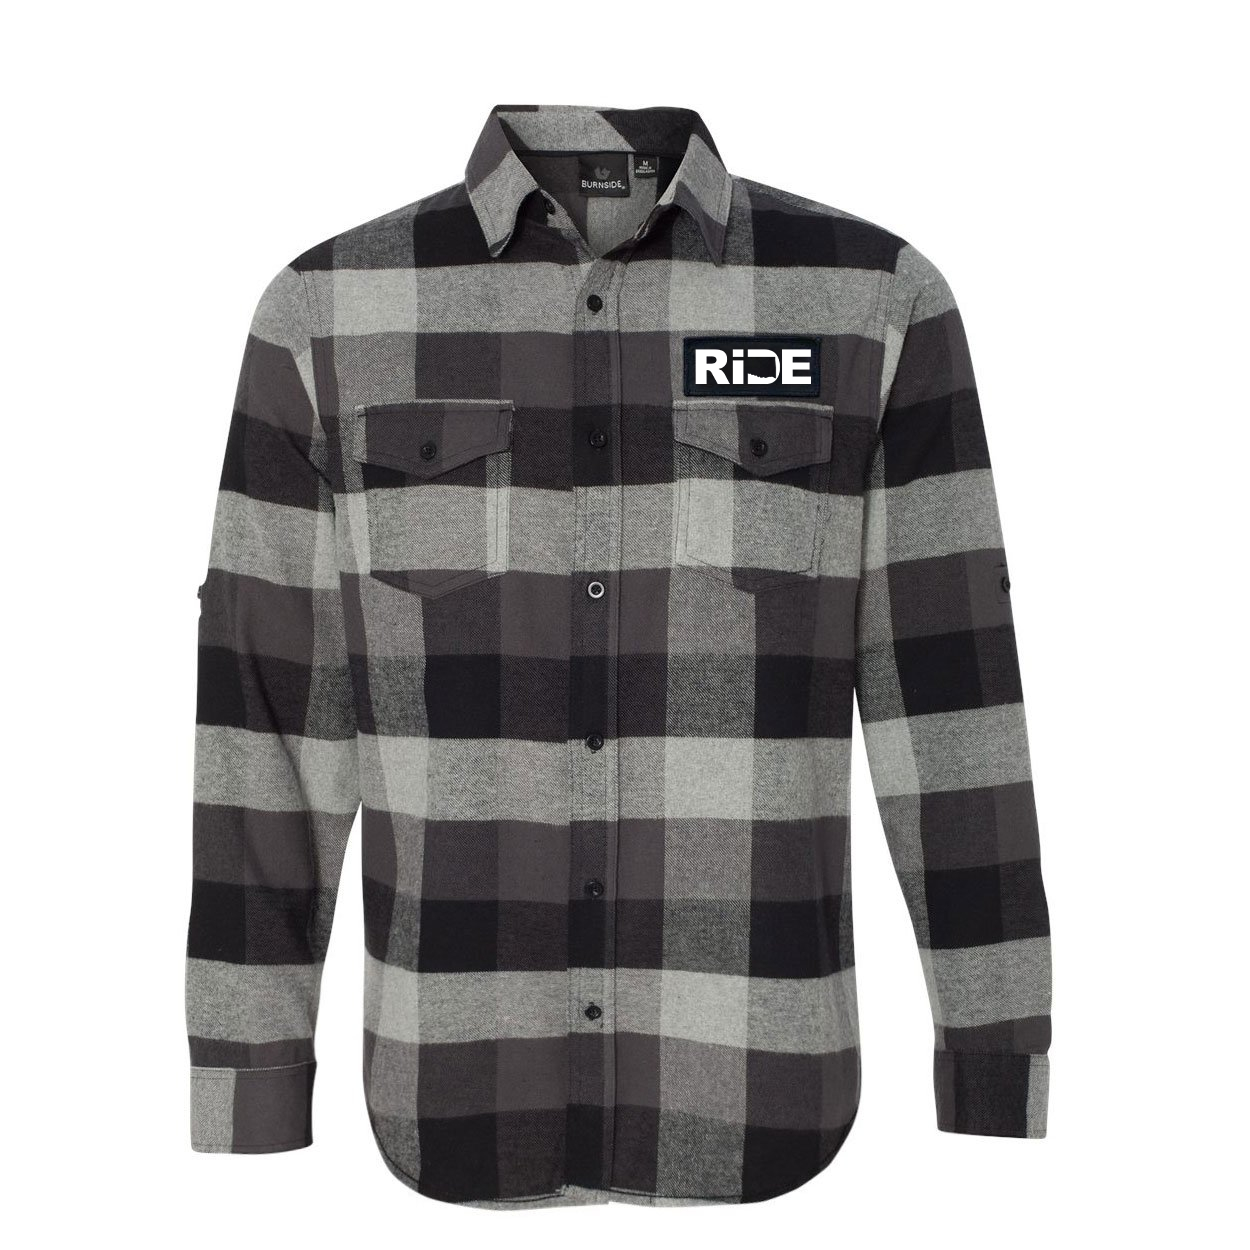 Ride Oklahoma Classic Unisex Long Sleeve Woven Patch Flannel Shirt Black/Gray (White Logo)